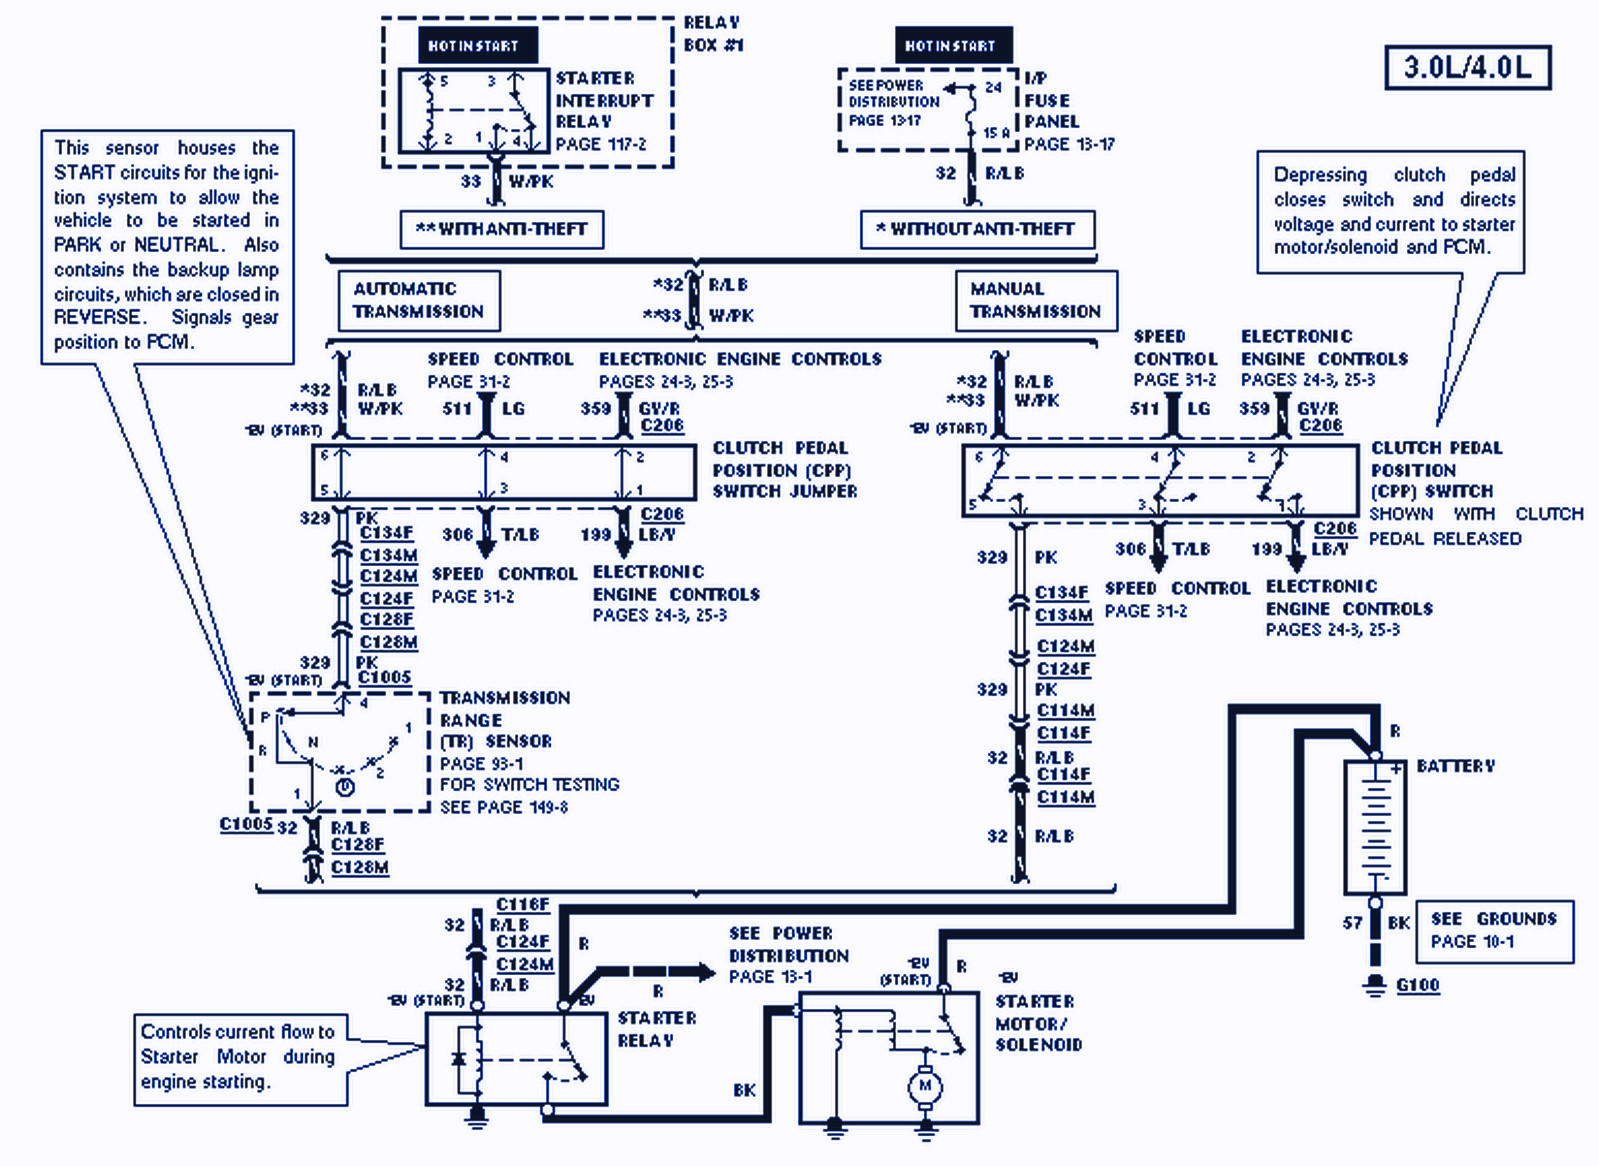 Ford Ranger 4 0 Engine Cooling System Diagram Wiring Library 3 Mercruiser Starter 1995 Circuit Schematic 1996 Land Rover Discovery